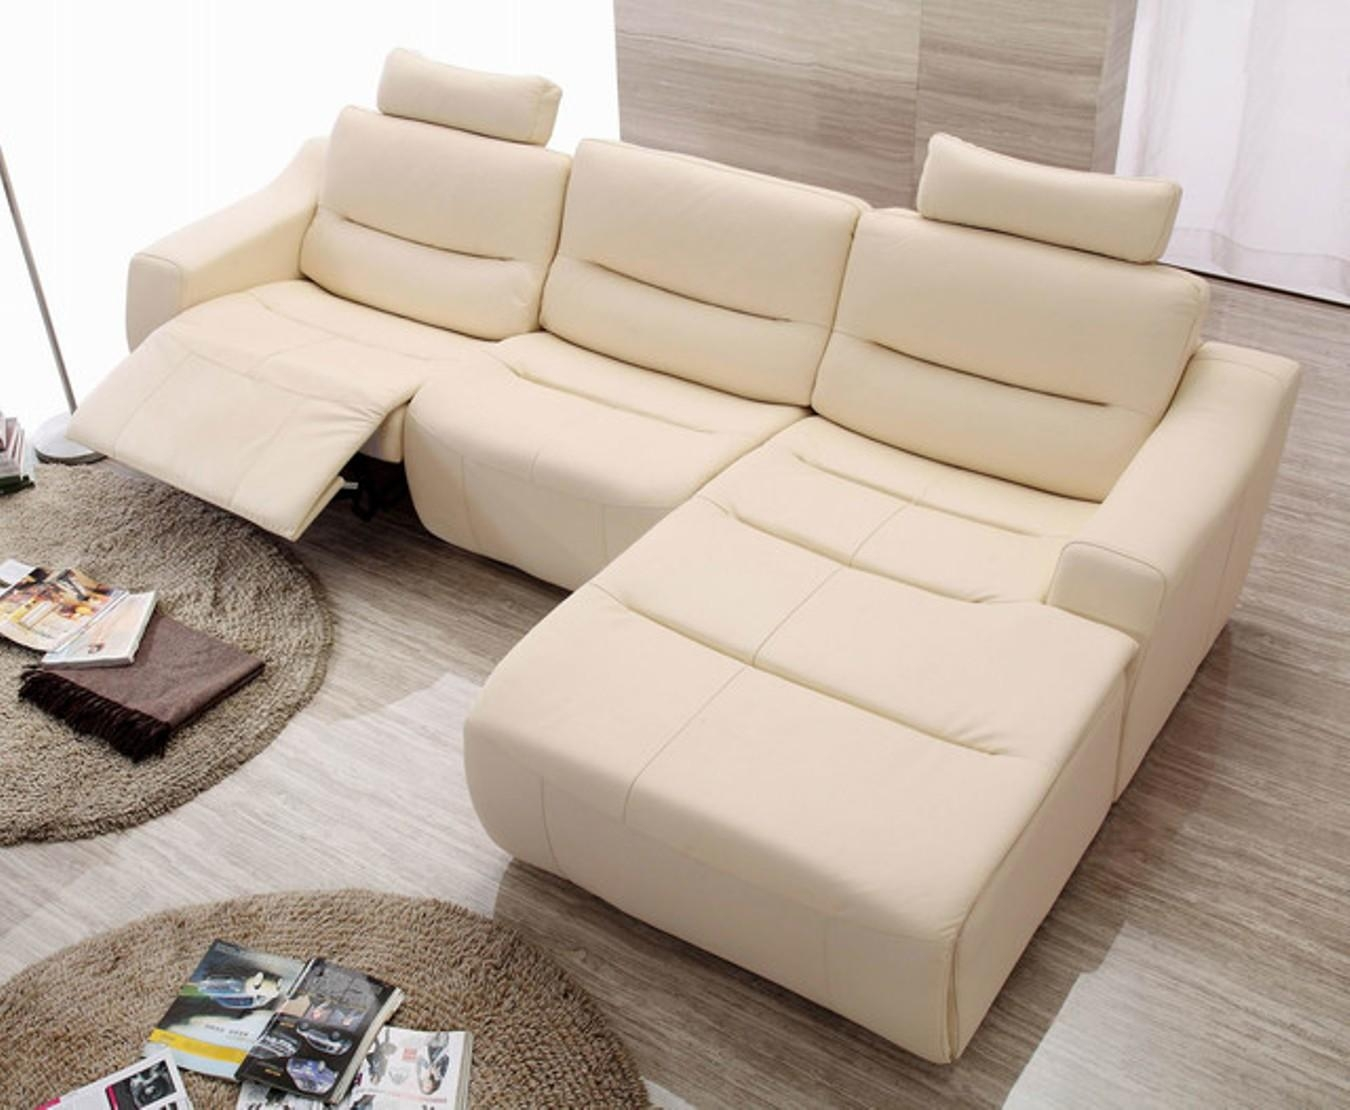 Sofas Center : Stunning Small Sectional Sofa With Recliner Images Intended For Small Scale Leather Sectional Sofas (Image 17 of 20)